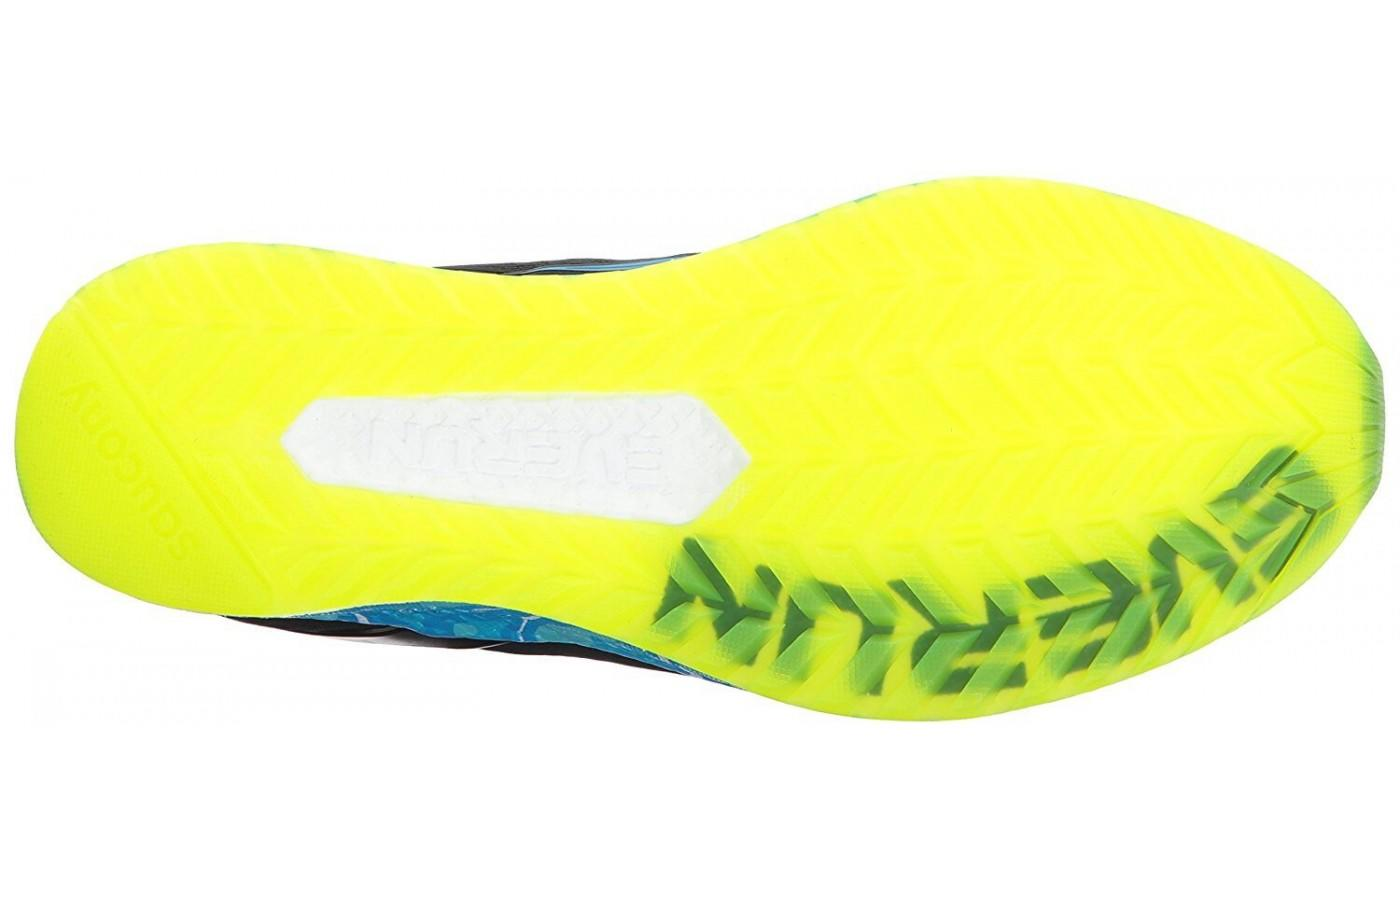 The crystal-rubber outsole of the Saucony Freedom ISO is one of the biggest pros.